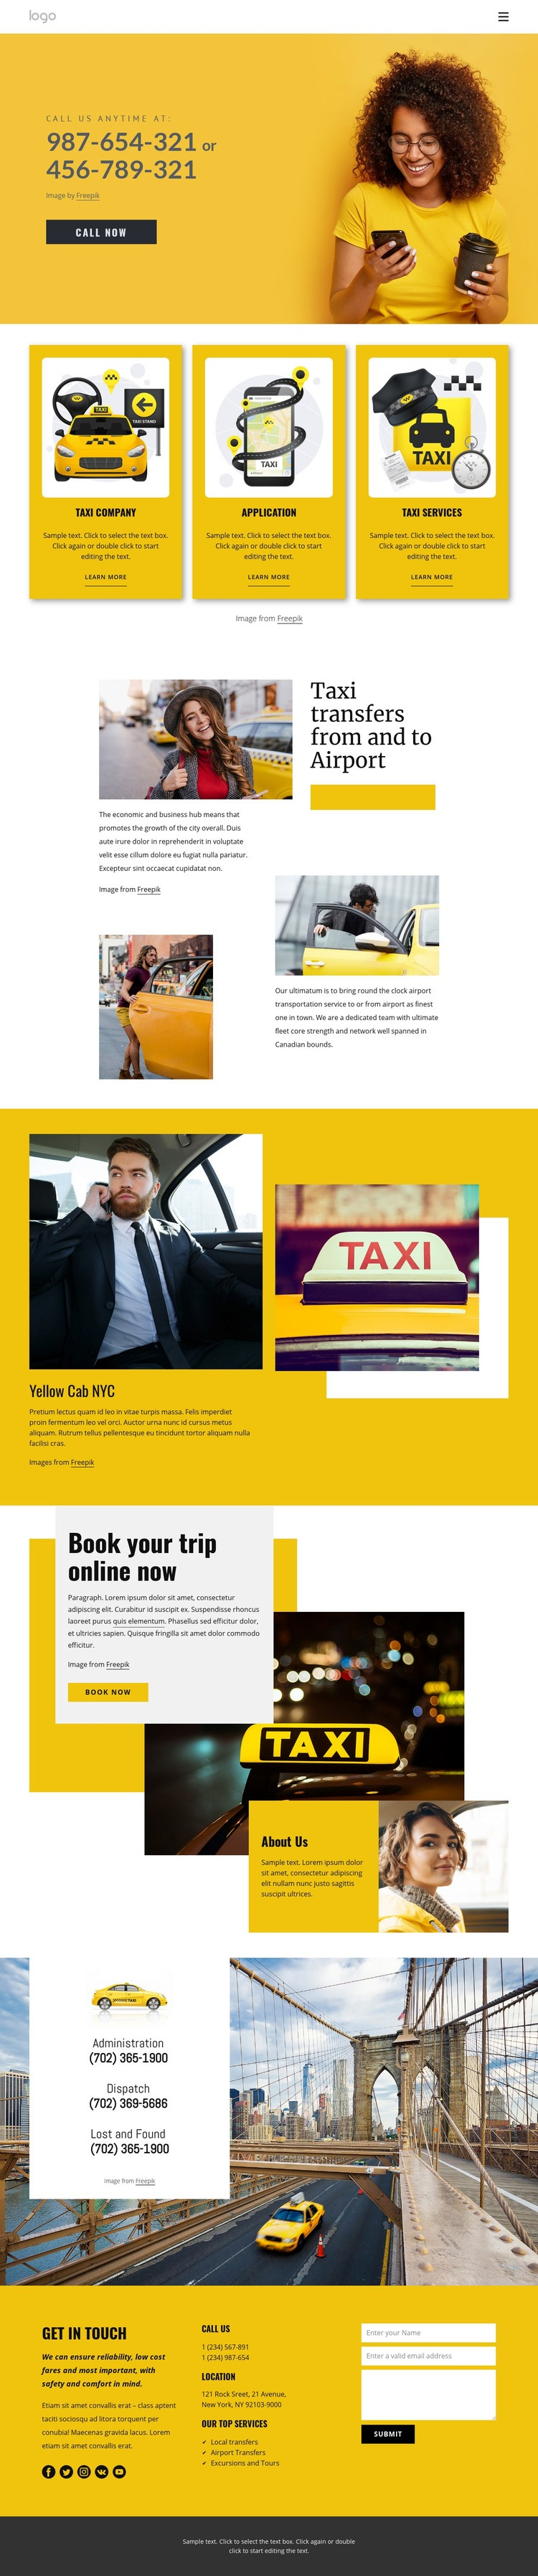 Quality taxi service Web Page Design